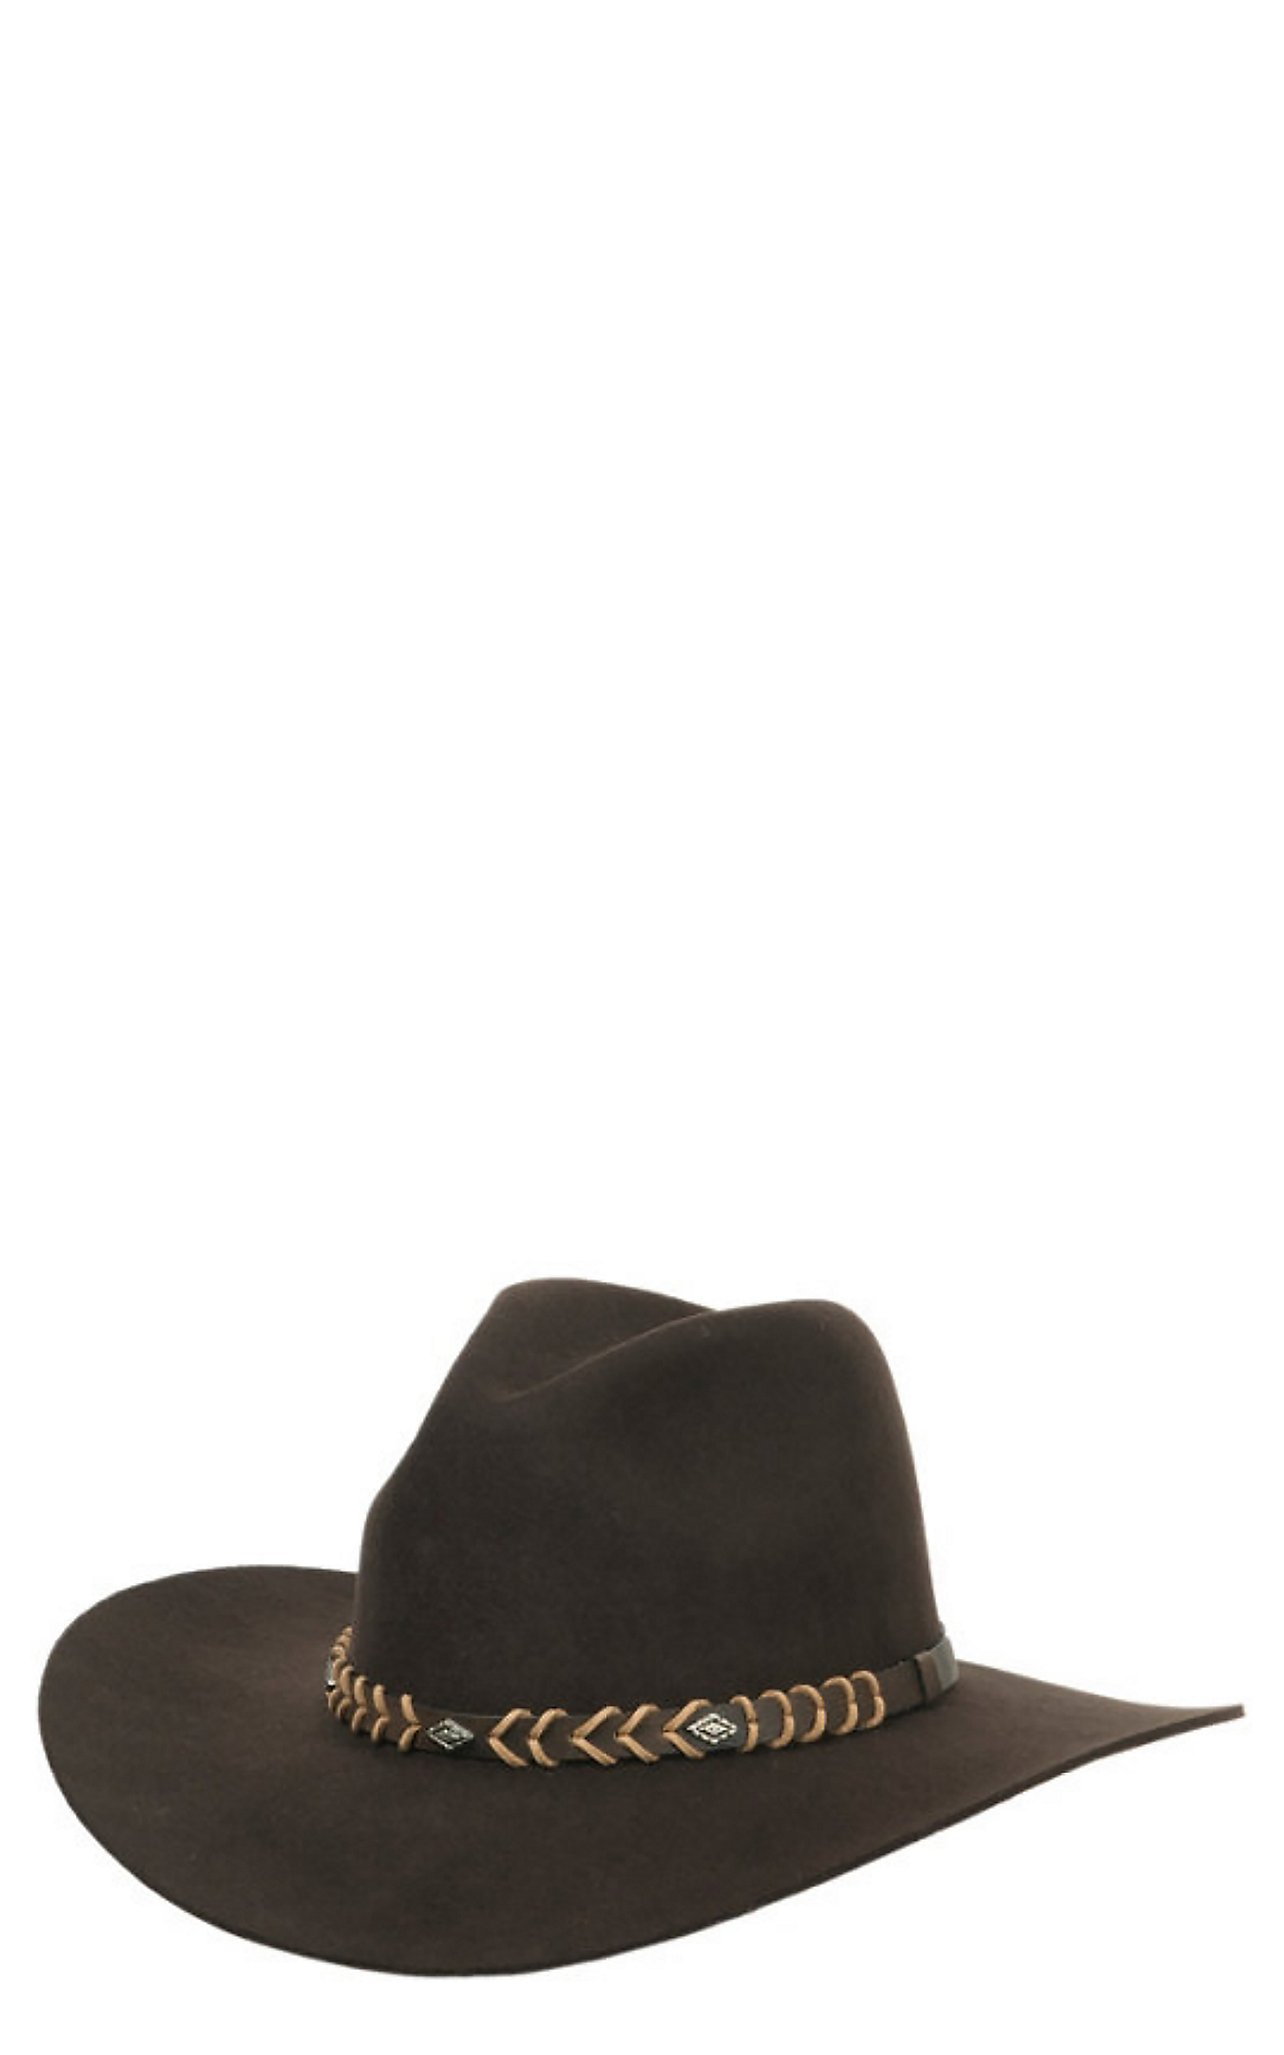 Rodeo King 3X Tracker Chocolate Brown Banded Long Oval Wool Cowboy Hat  de809ce538f